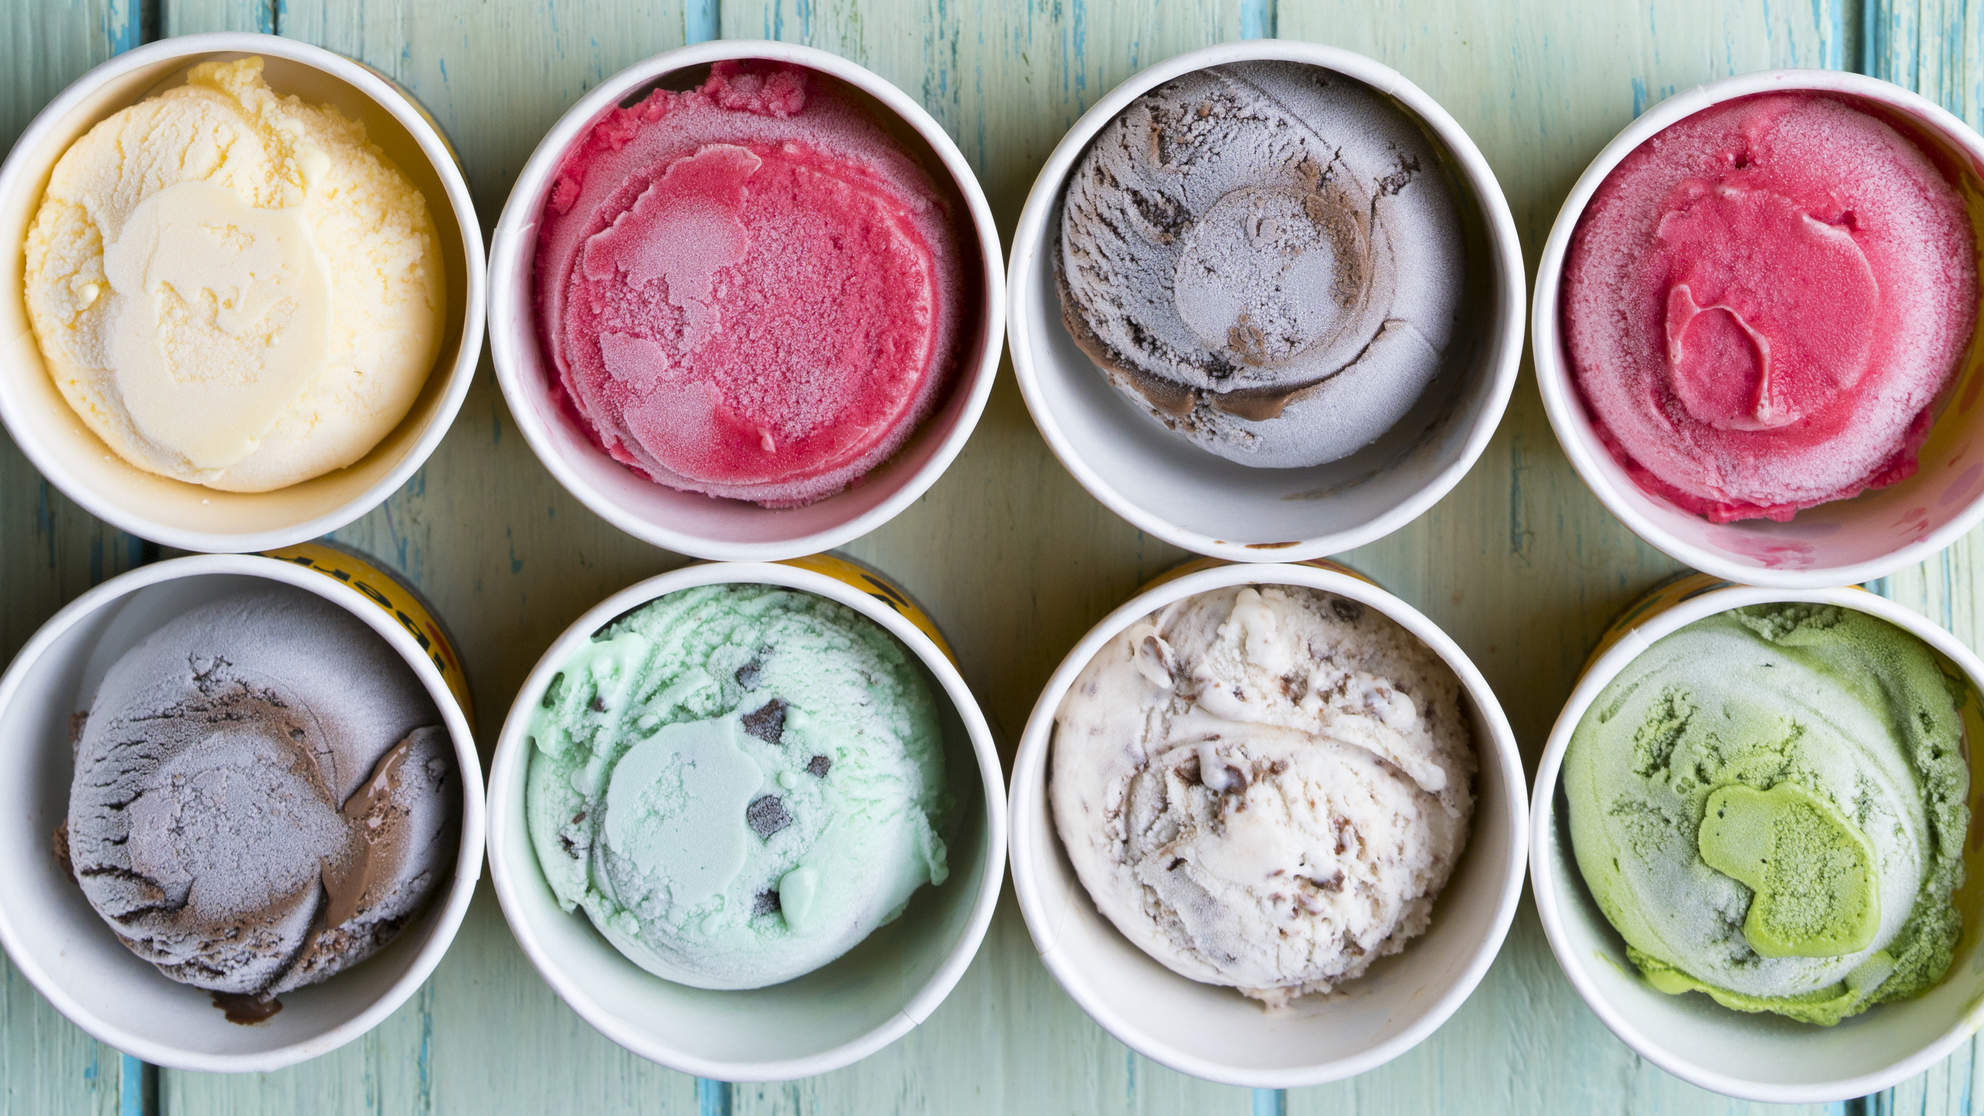 Is Ice Cream Healthy? A Nutritionist's Take on Halo Top and Other 'Healthier' Brands